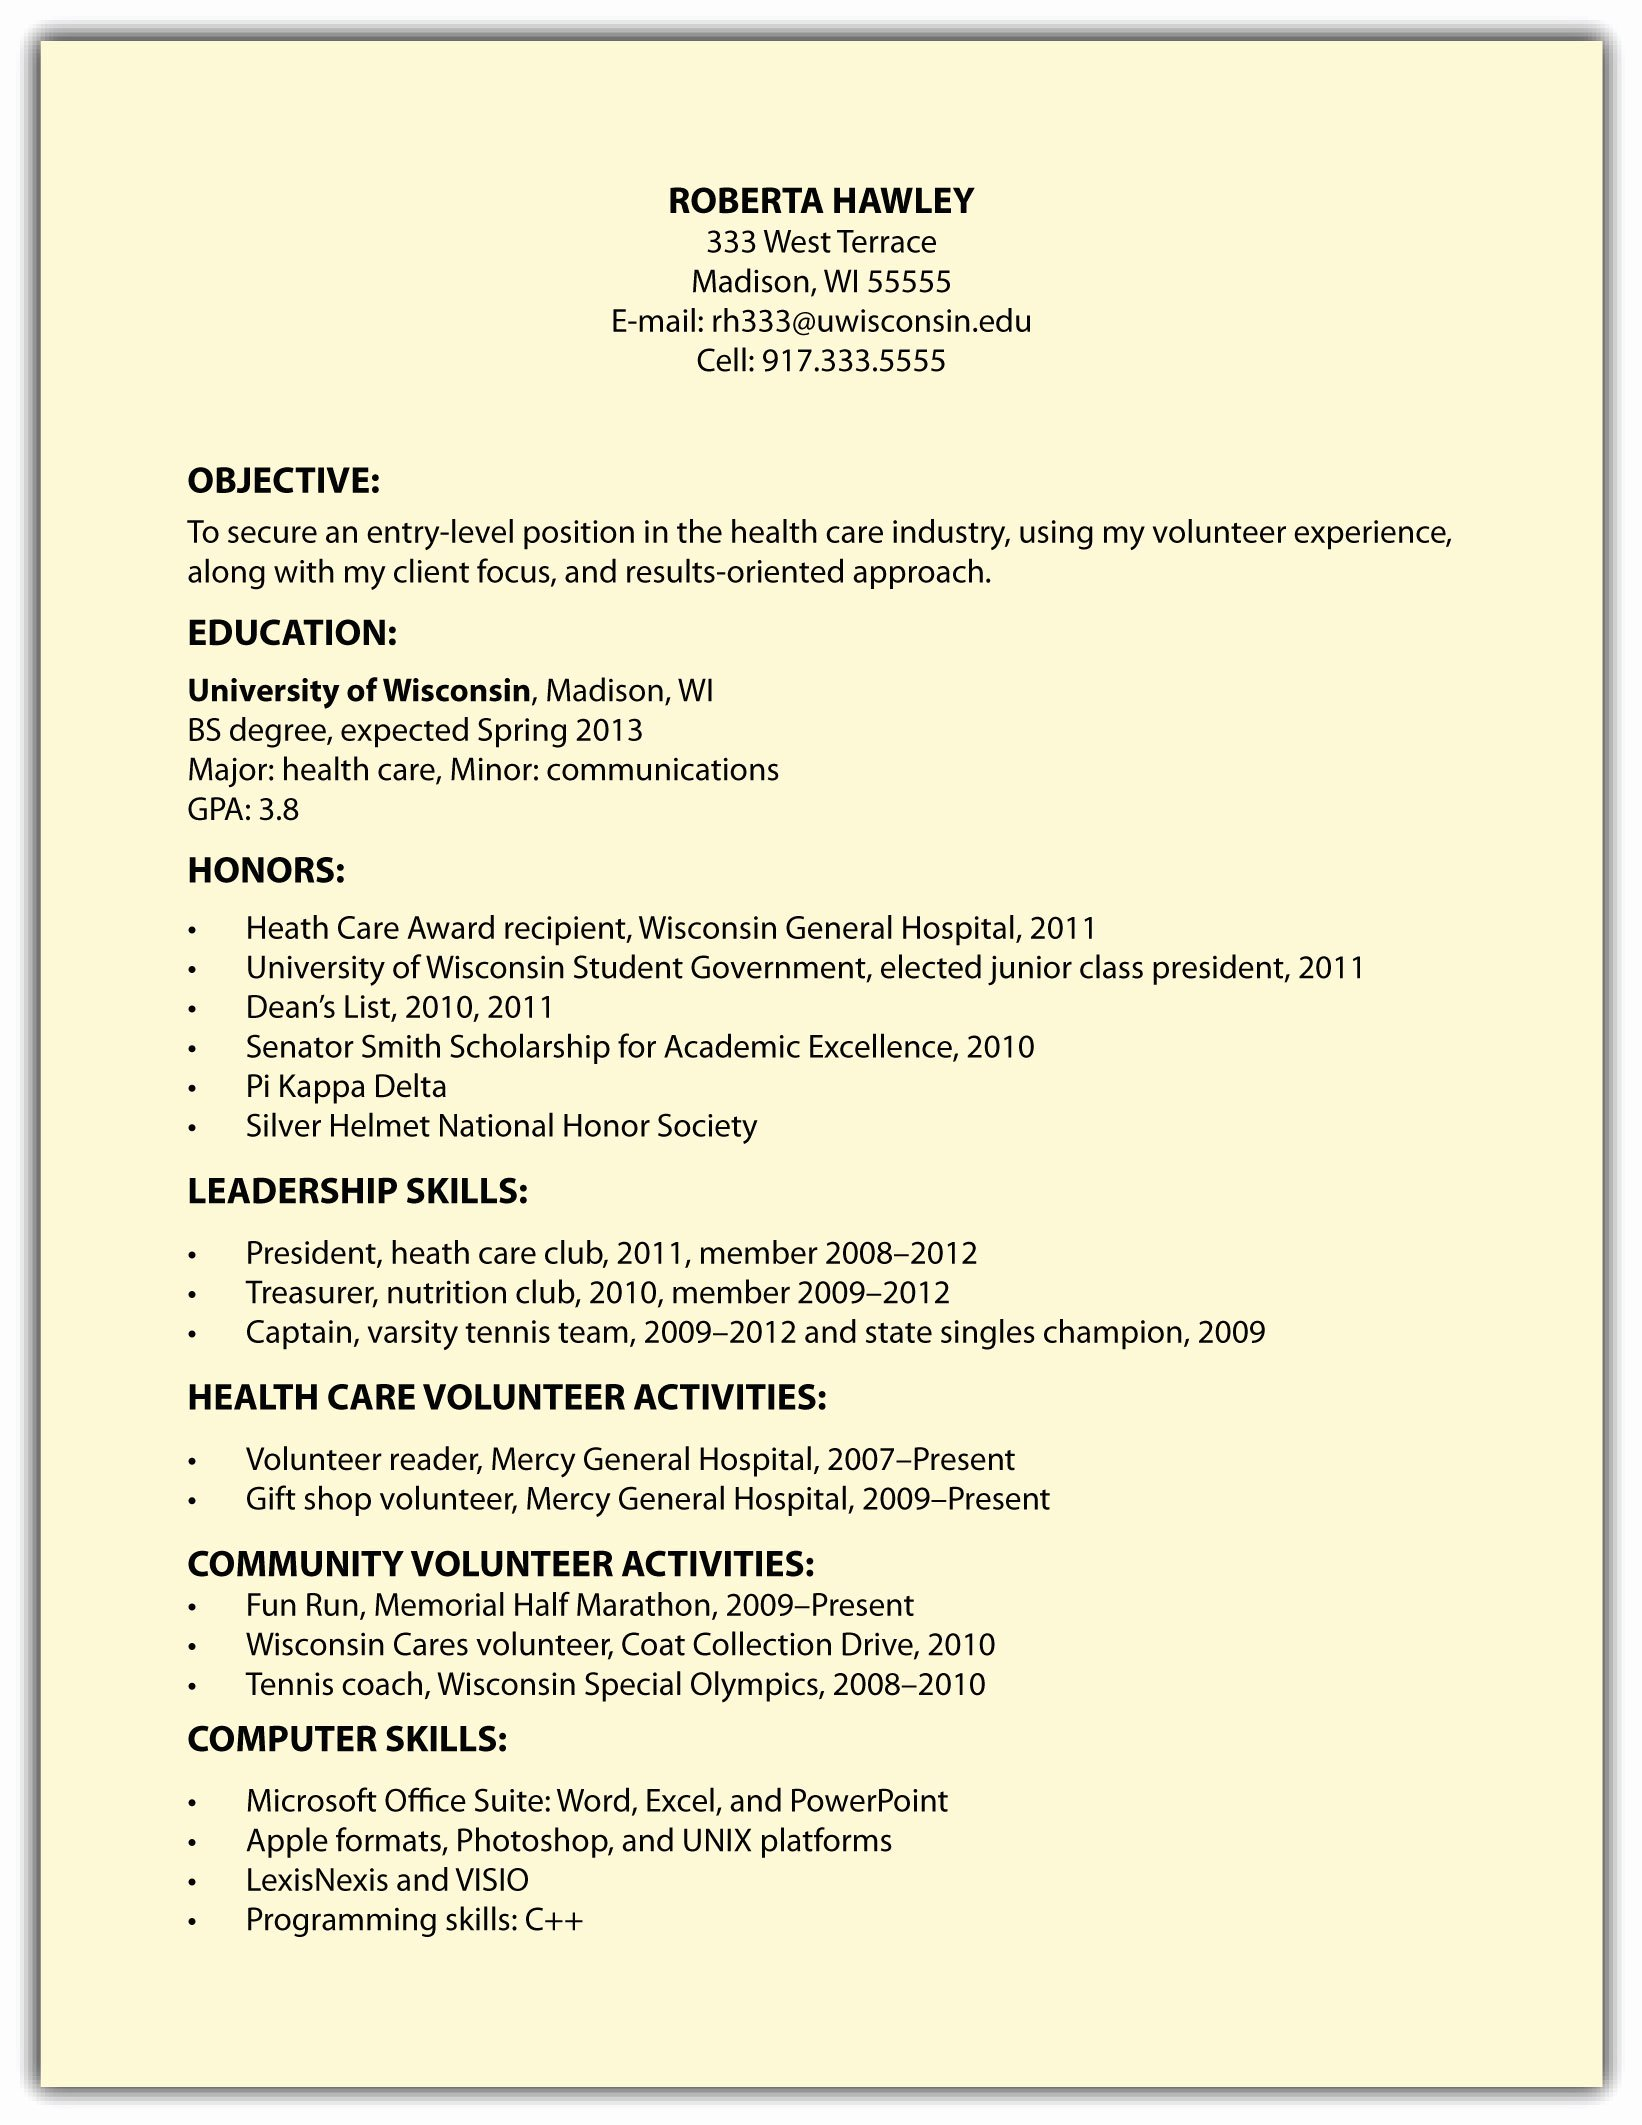 Resume Objective Examples College Student Affordable